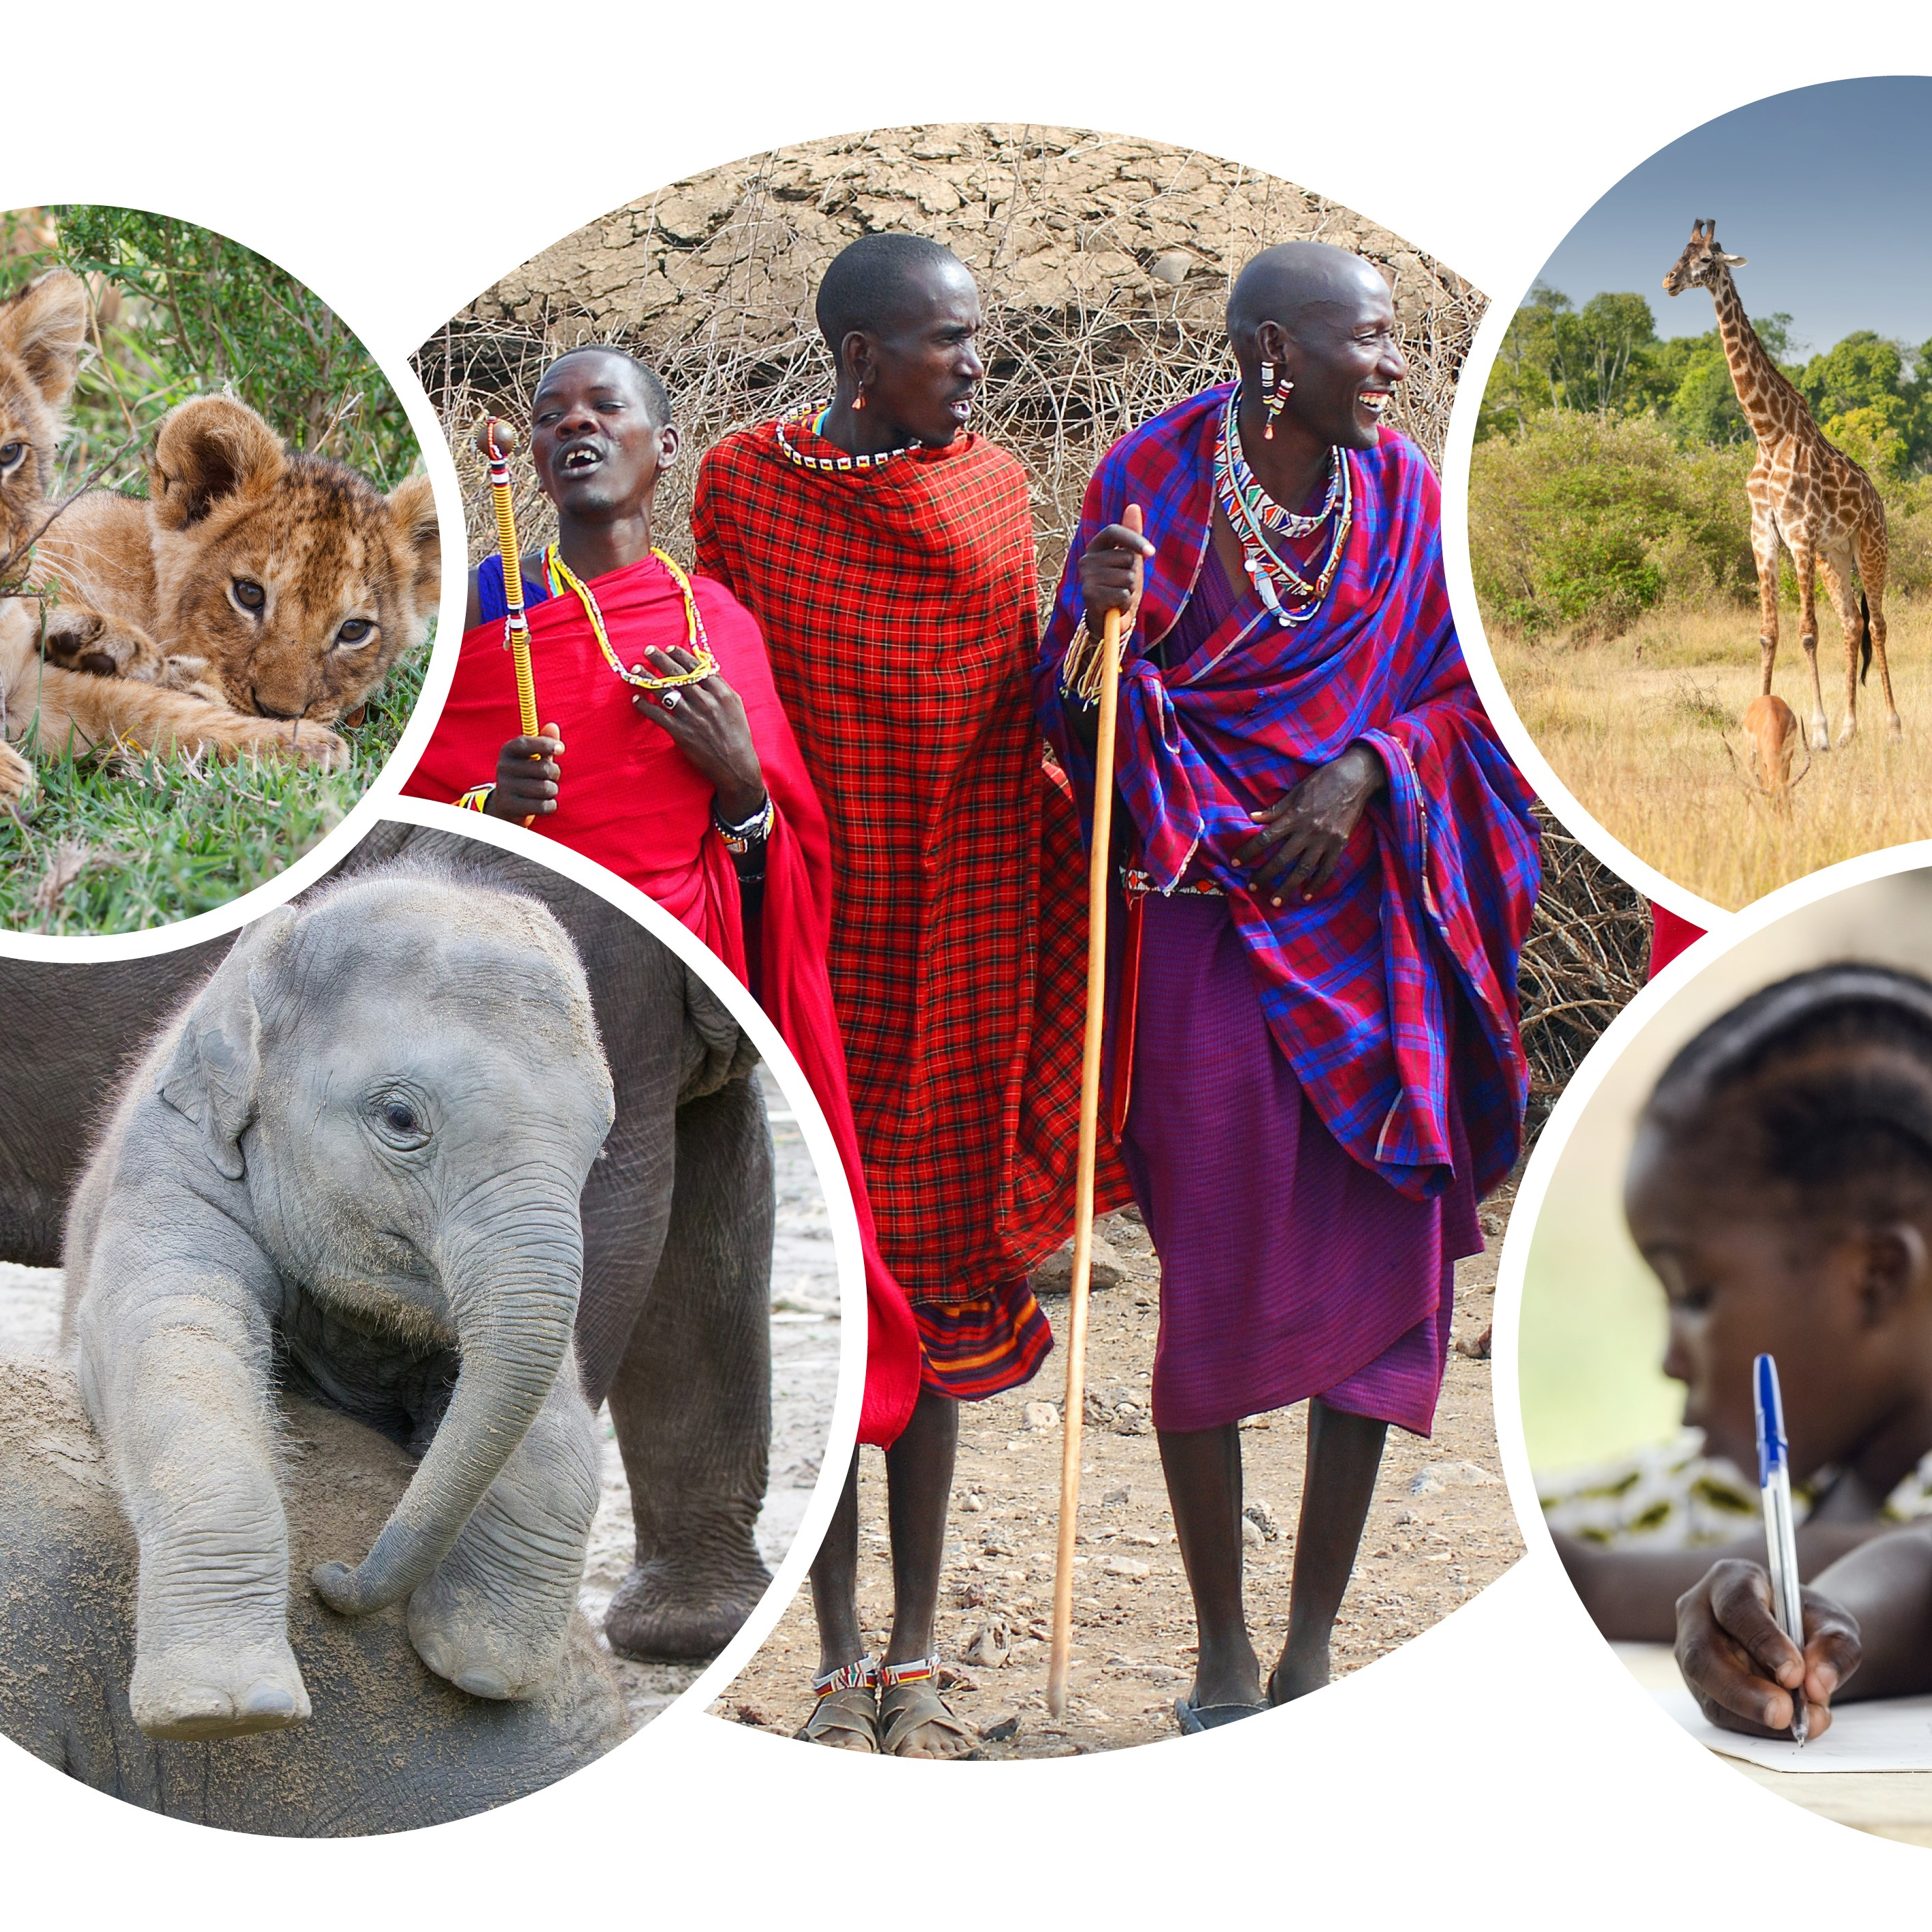 The Kenya Maasai Adventure Trek 2020 banner, featuring a baby elephant, lion cubs, a group of dancing Maasai Mara people, giraffes and local school children